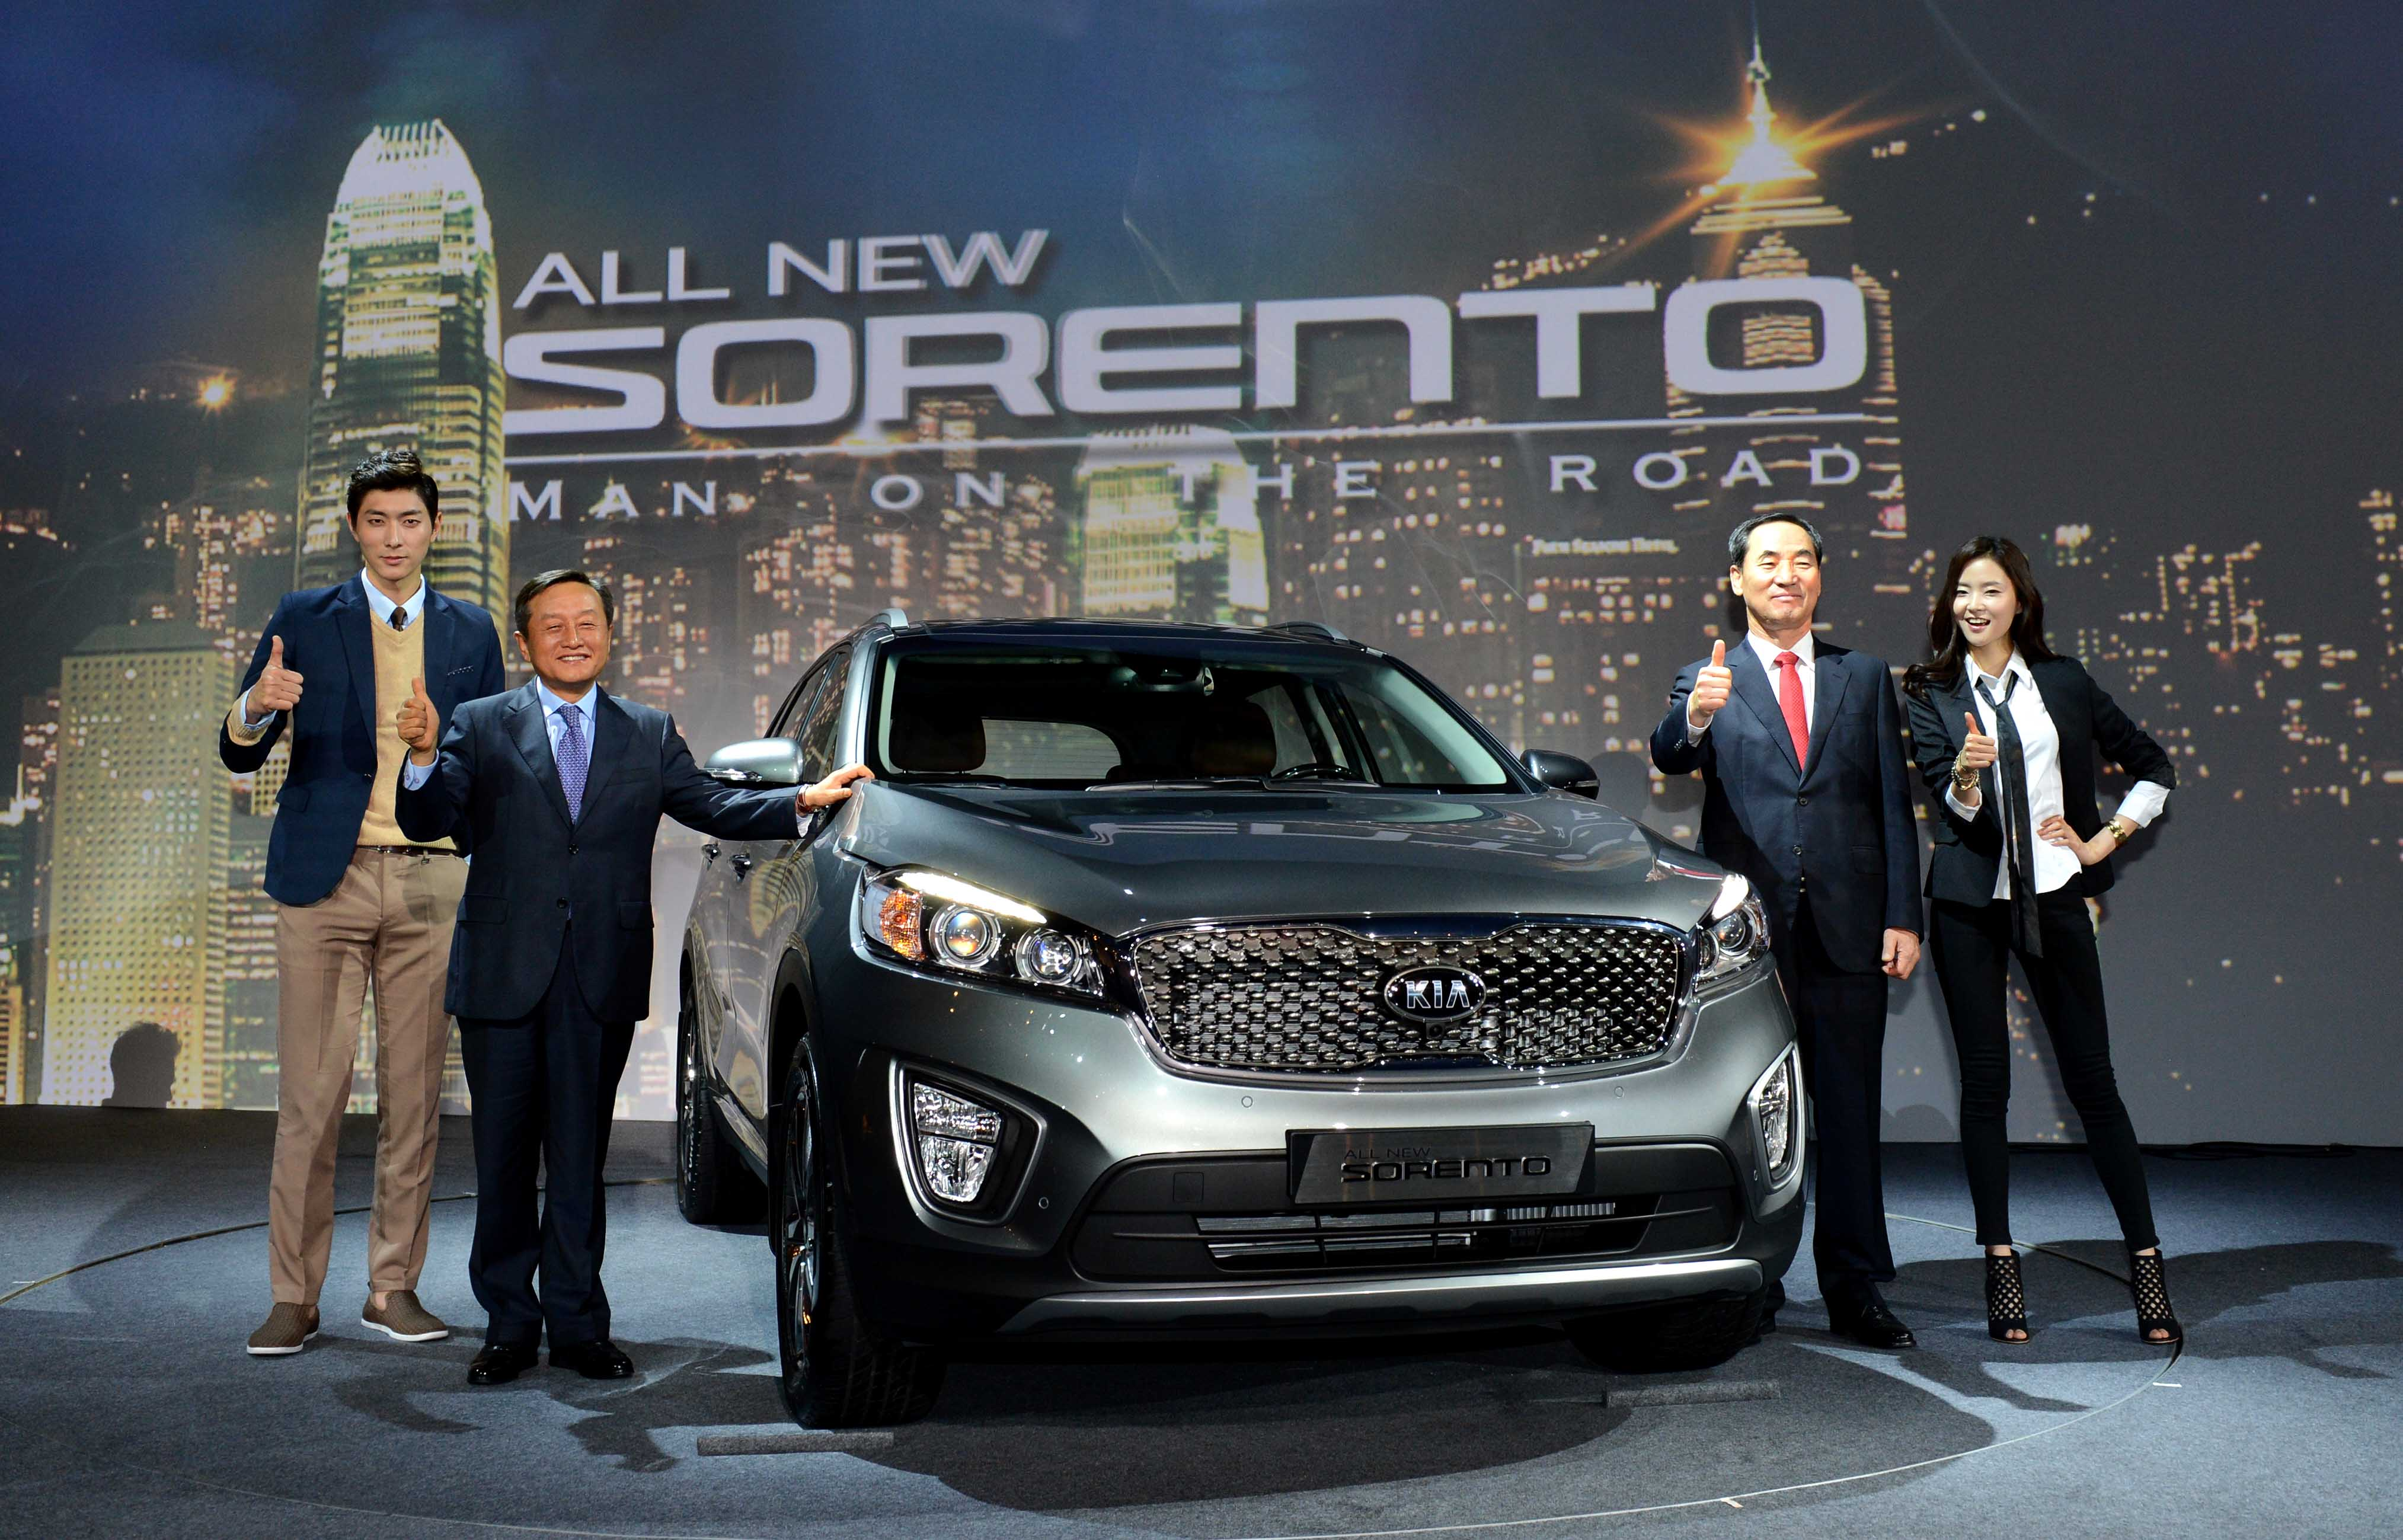 kia weeks ride sorento price sxl this greenvilleinsider